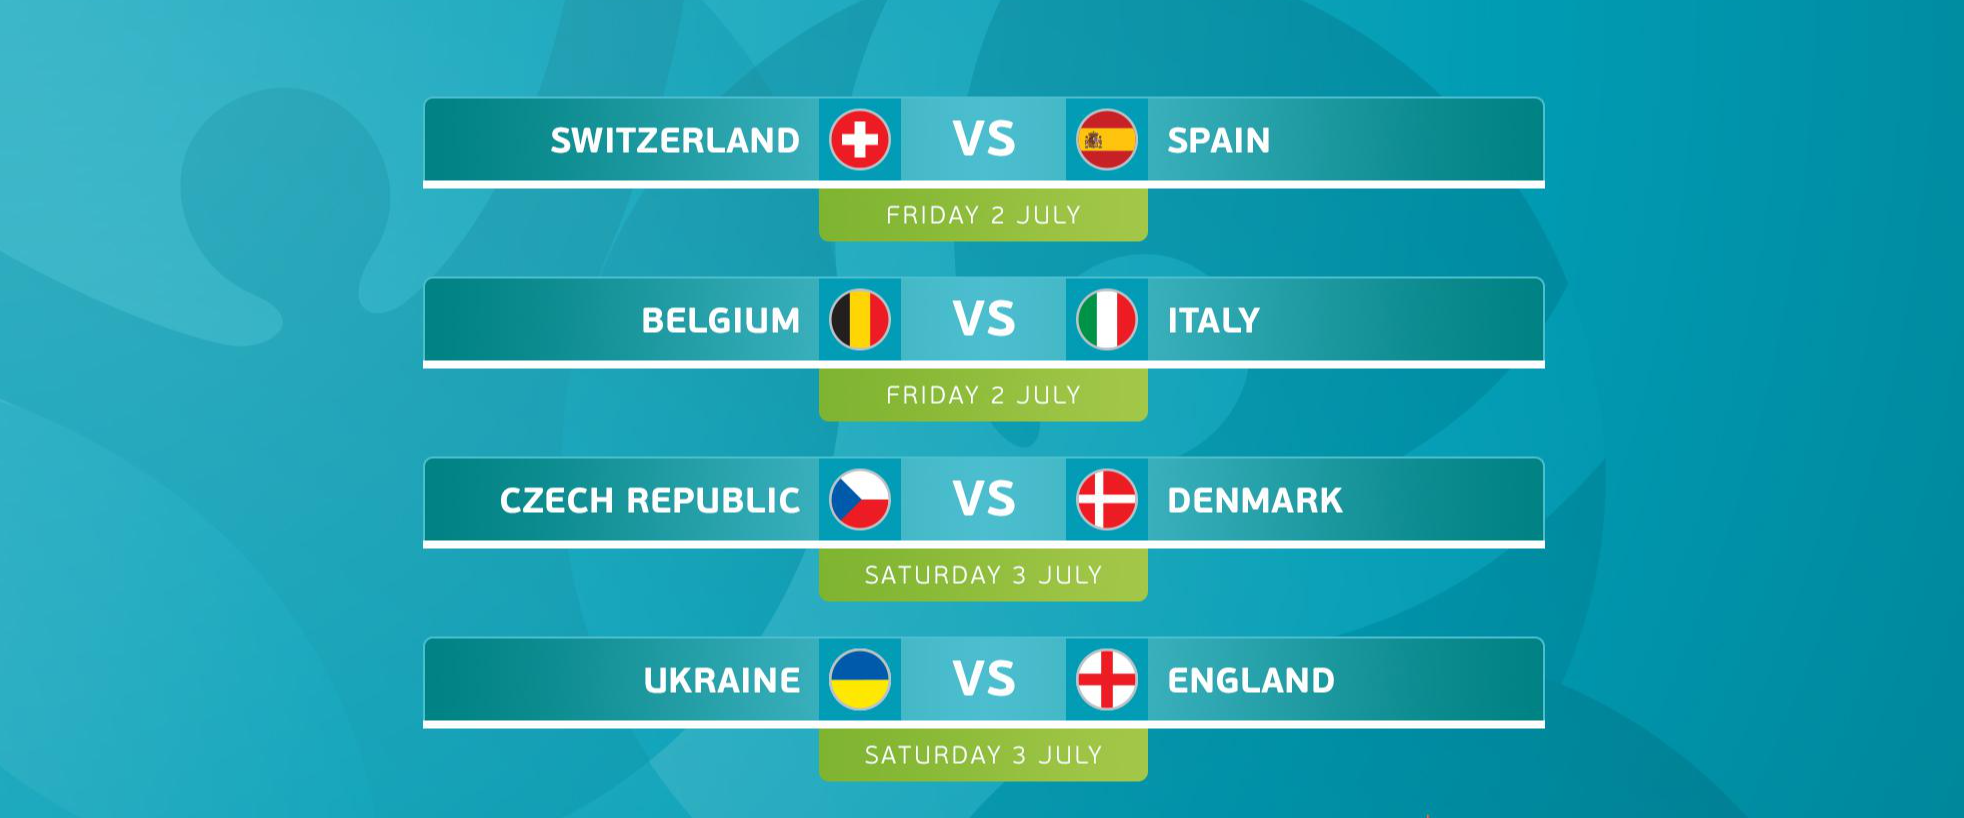 The Last Eight of the Euros - Who Will Prevail This Weekend?